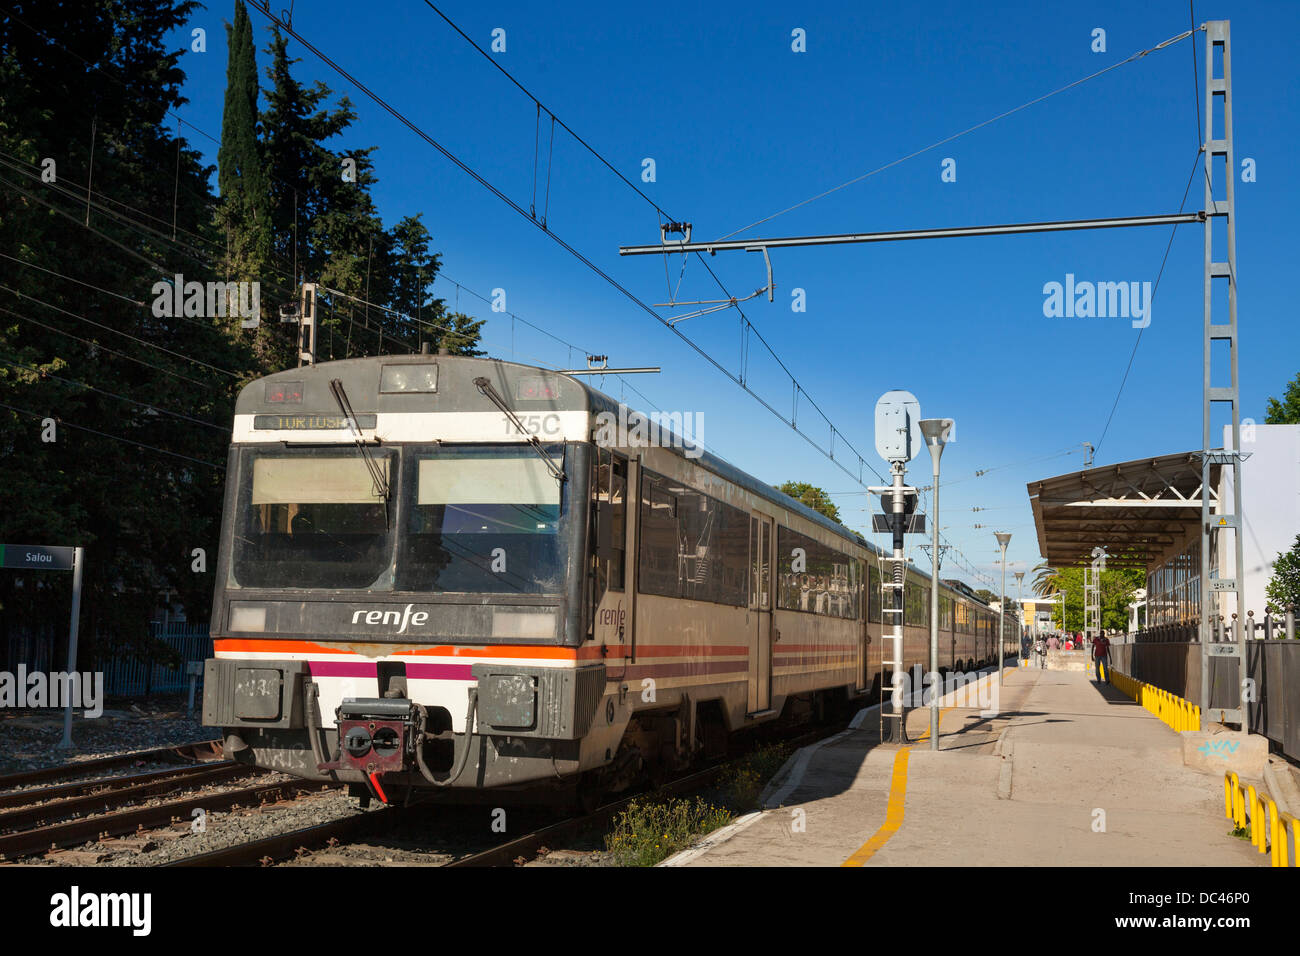 Renfe train at Salou Station platform with overhead power lines. - Stock Image